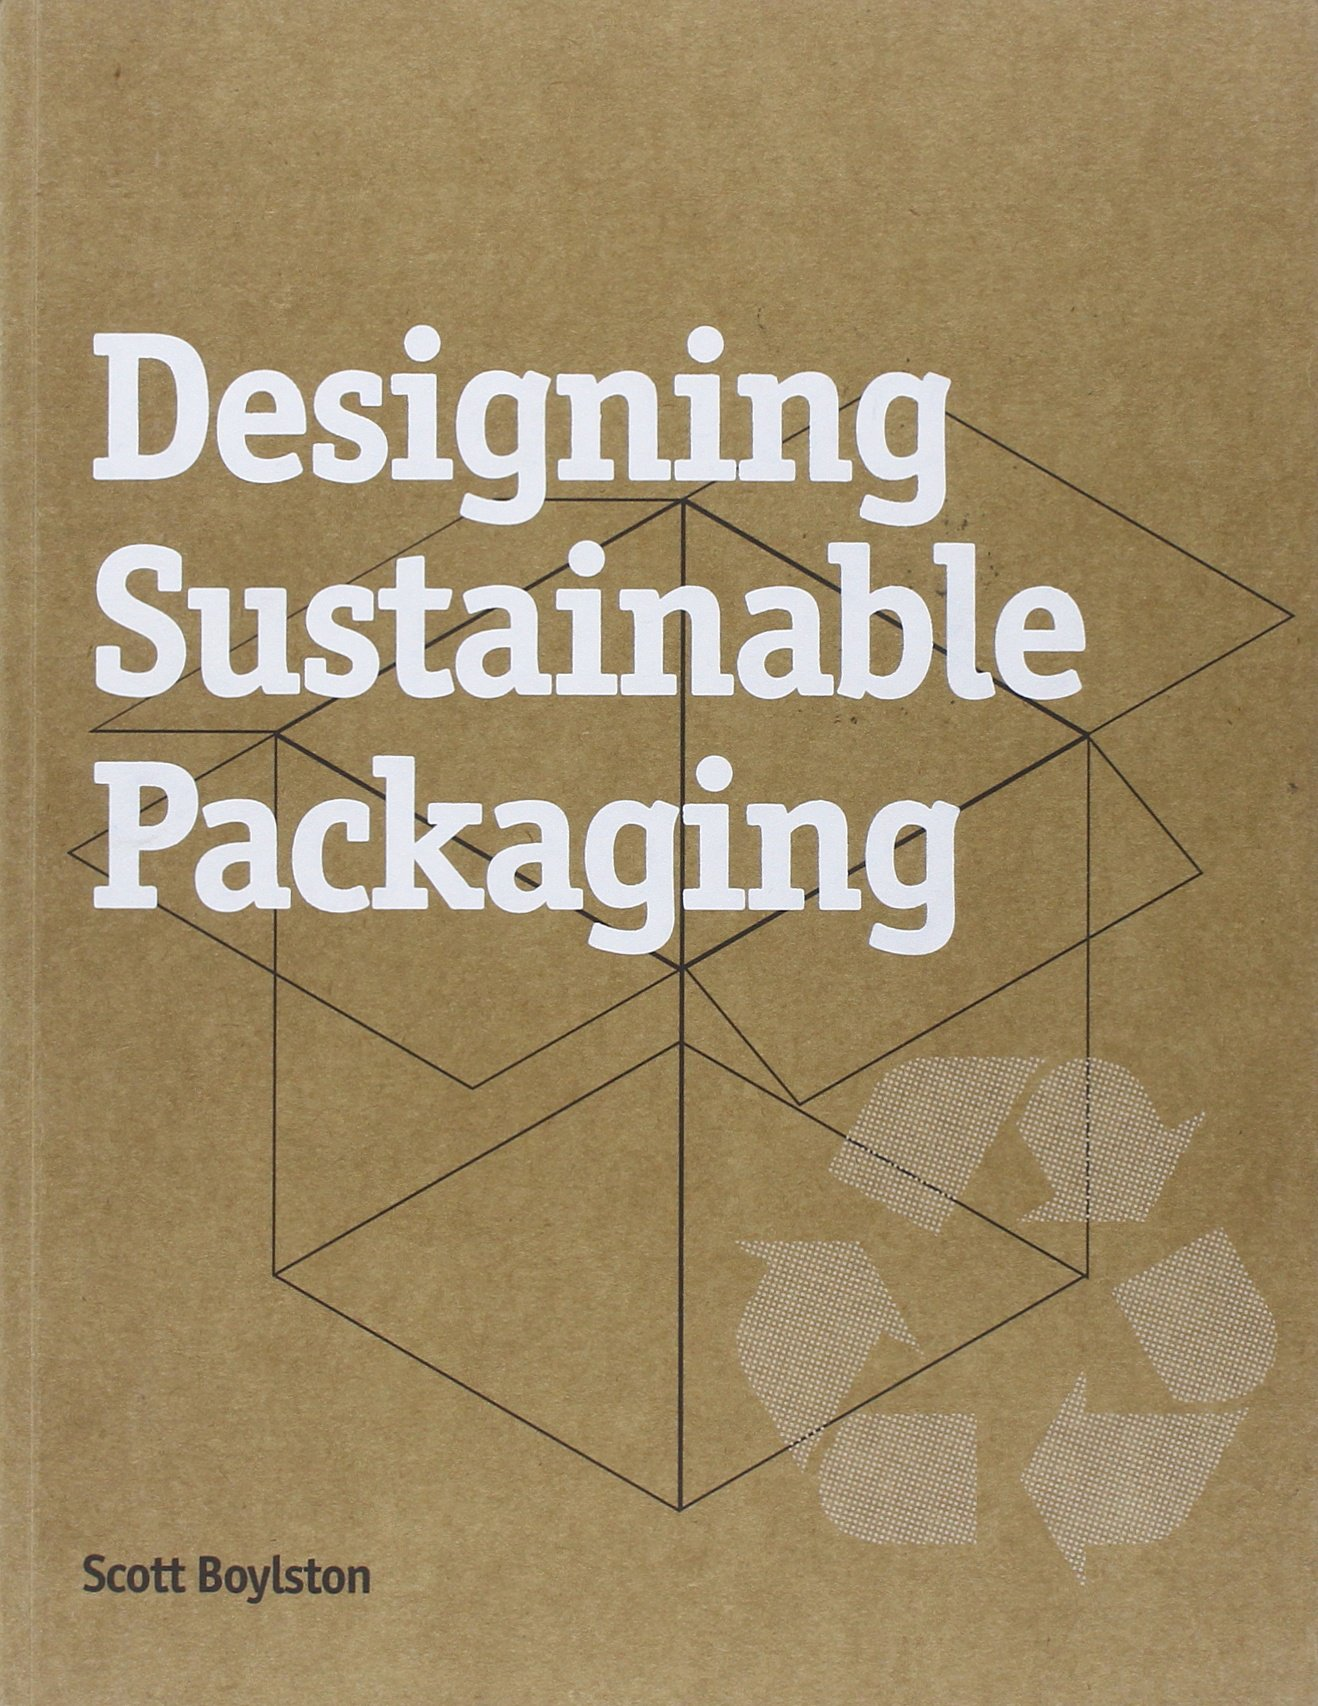 Buy Designing Sustainable Packaging Book Online at Low